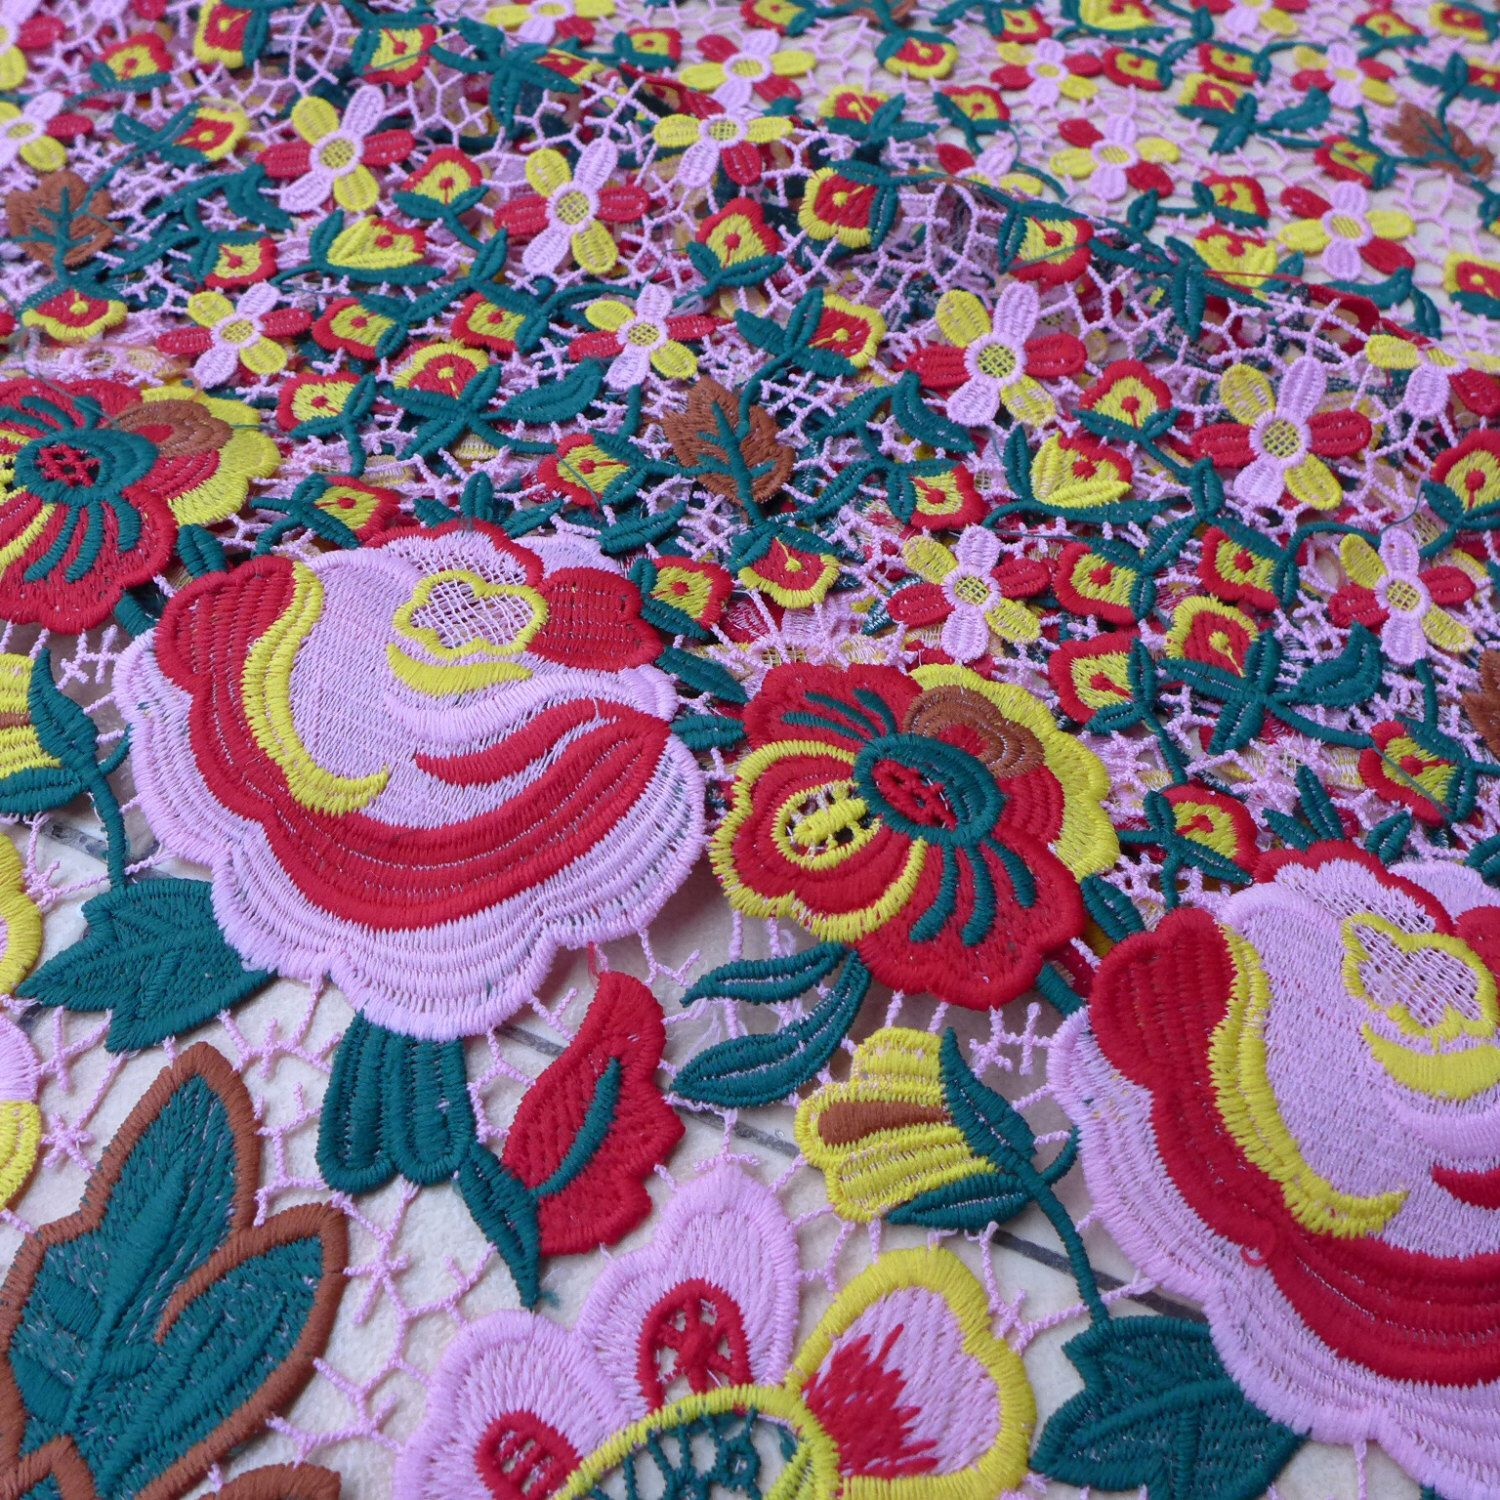 Spring flowers hight quality wedding dress fabric beautiful flowers ...